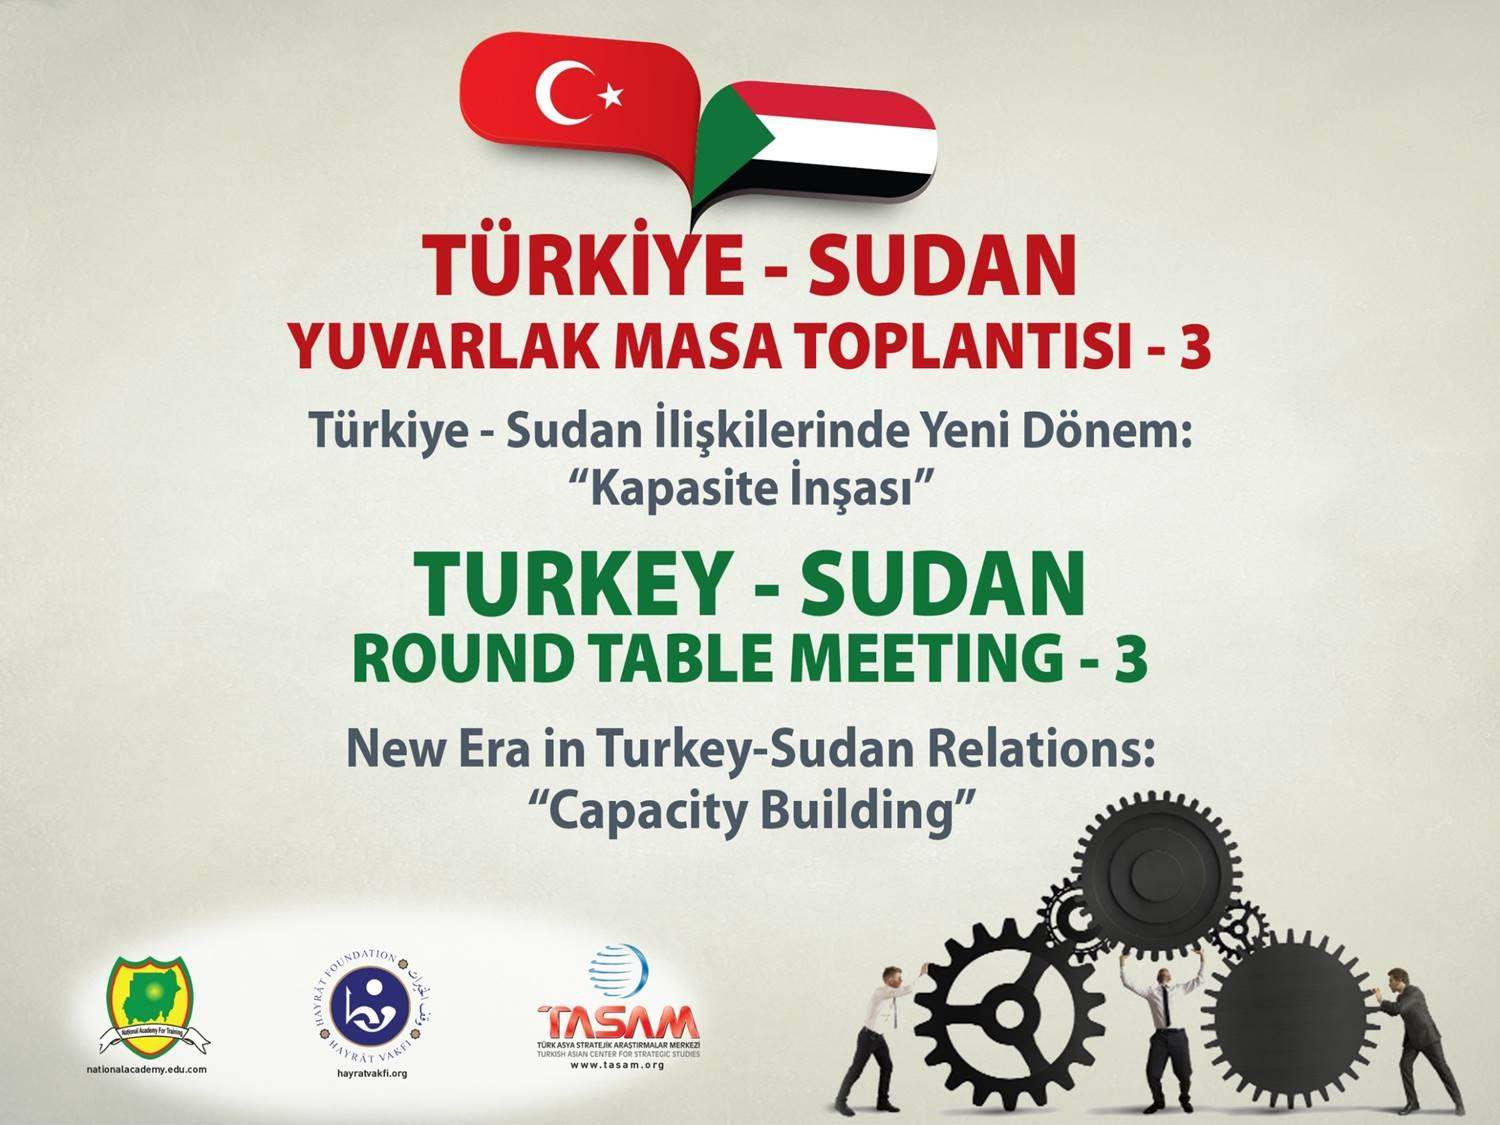 Turkey - Sudan Round Table Meeting - 3